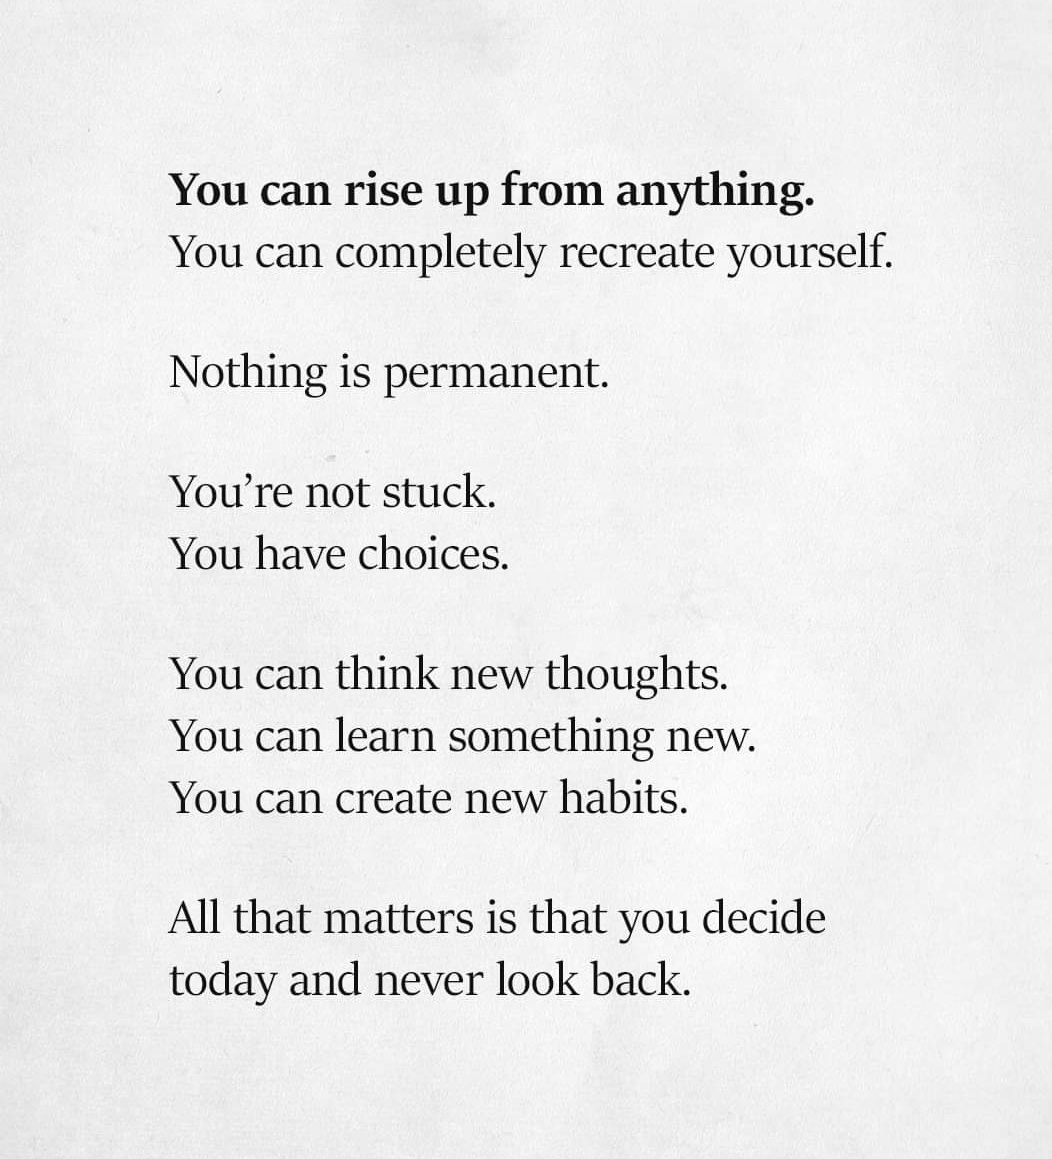 [image] you can rise up from anything